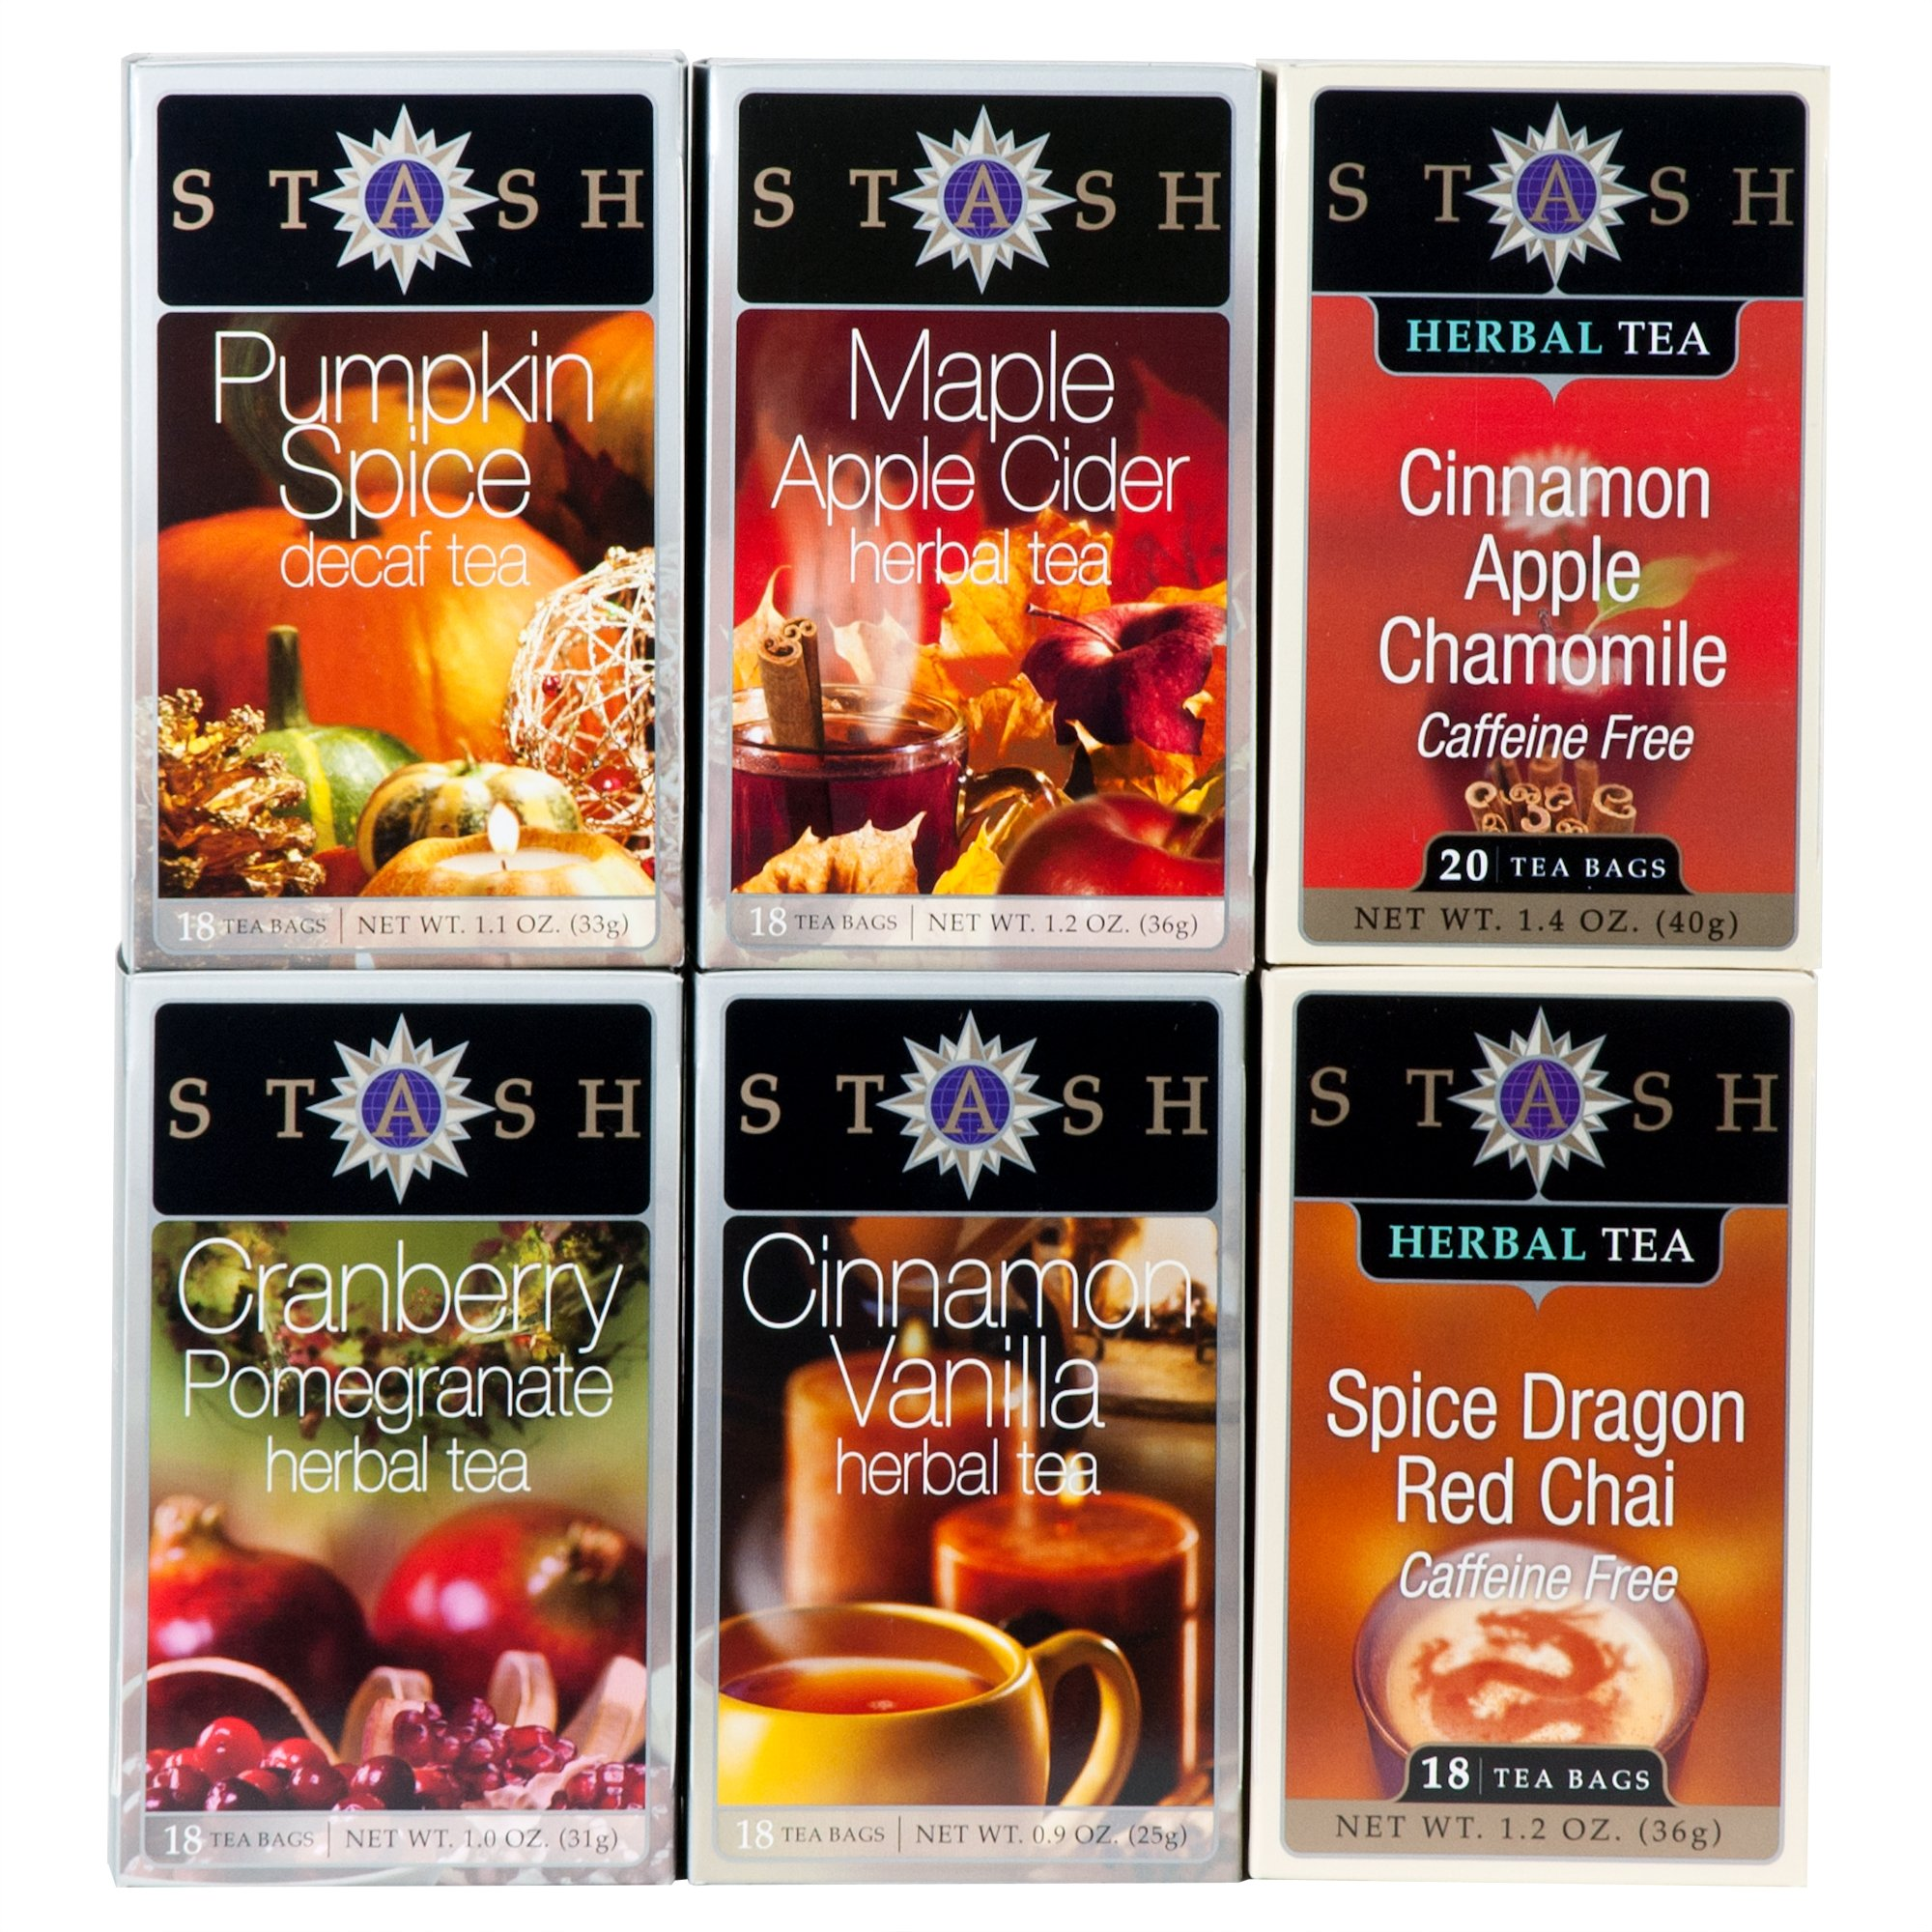 Stash Tea 6-Flavor Assortment Tea, Fall for Autumn, 6 Count by Stash Tea